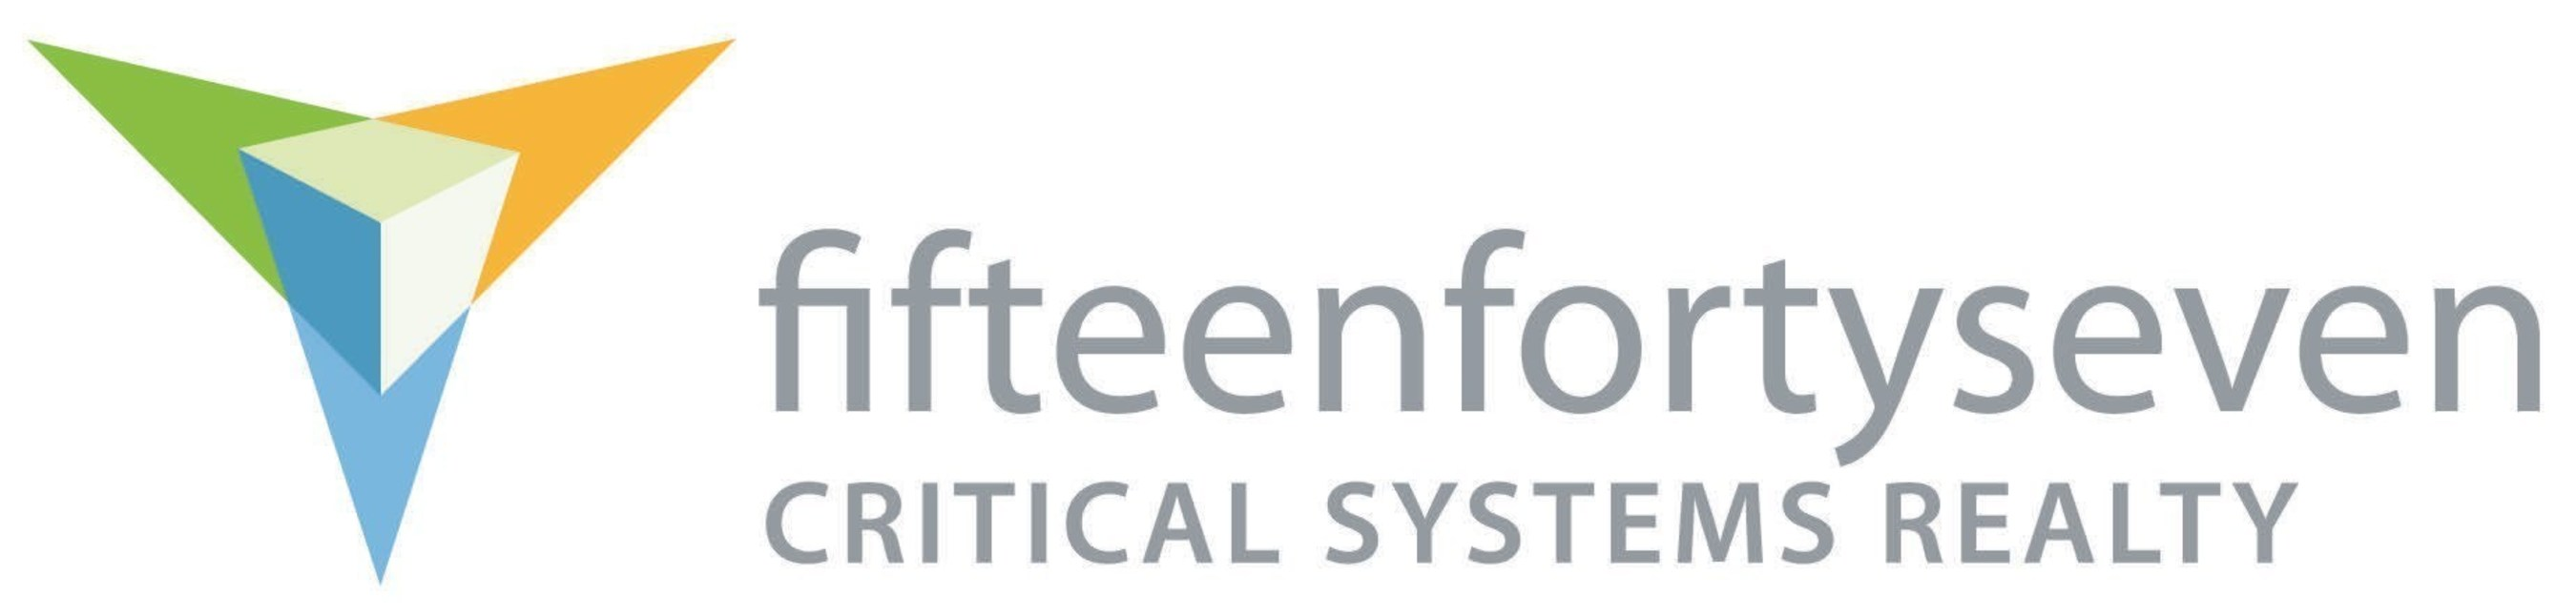 fifteenfortyseven Critical Systems Realty Welcomes Additional Carriers to Orangeburg Datacenter